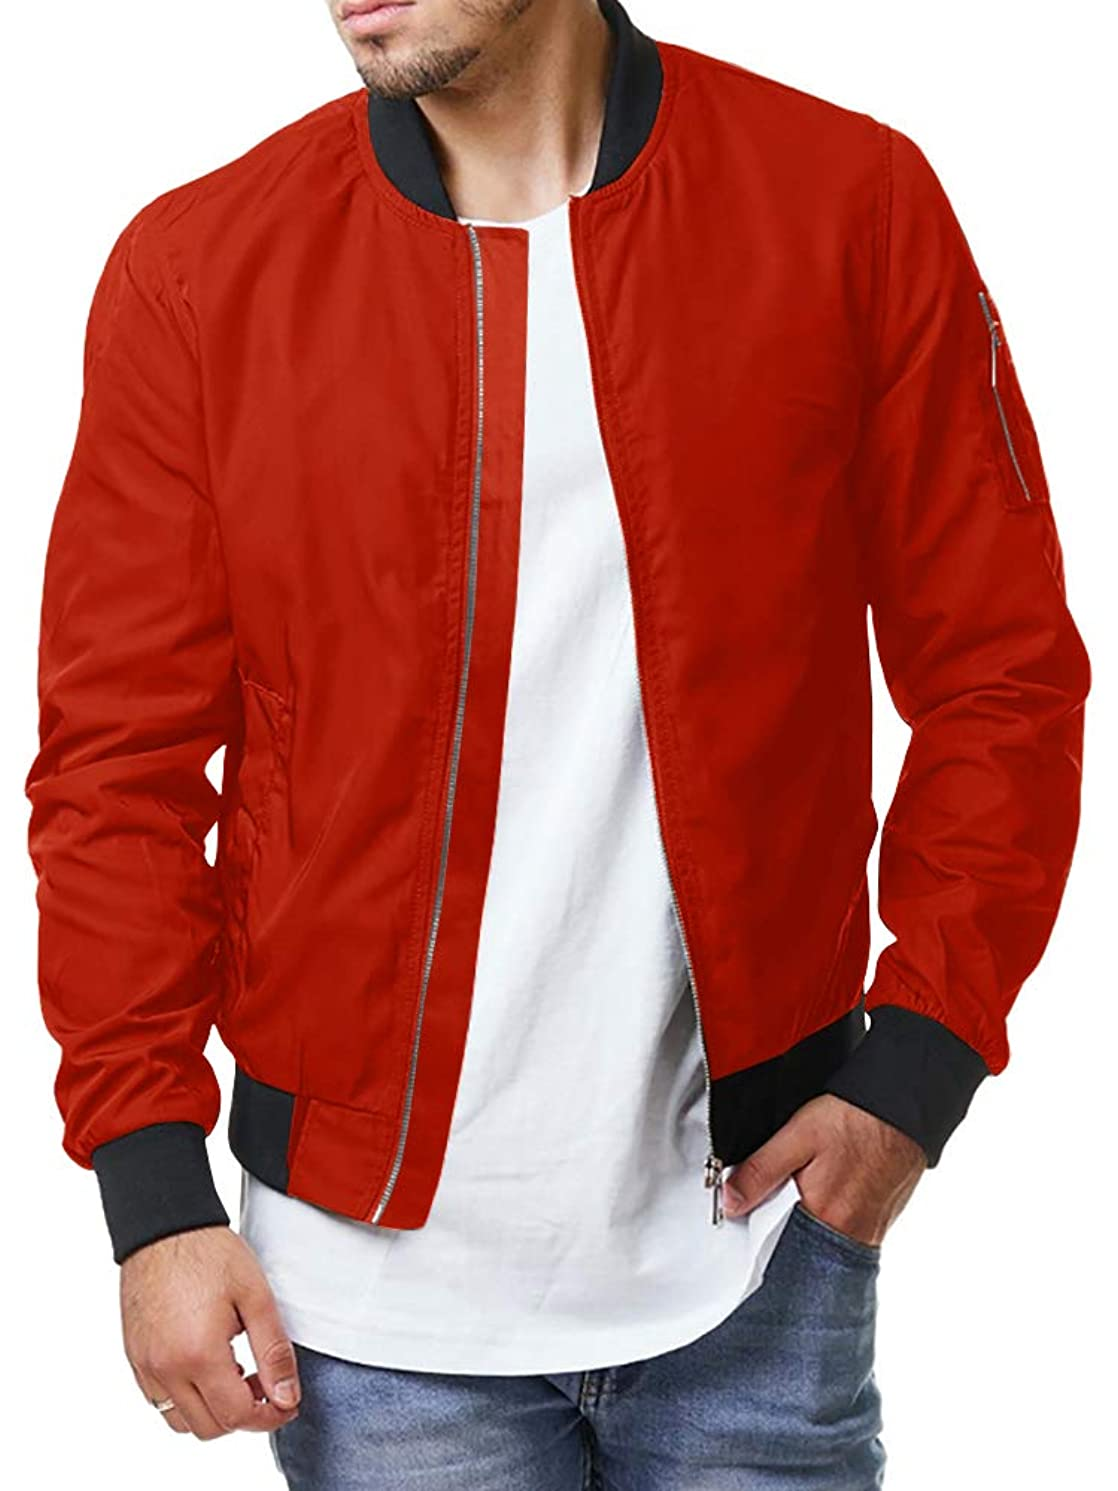 Pengfei Mens Jackets Bomber Varsity Diamond Quilted Spring Coats Outwear